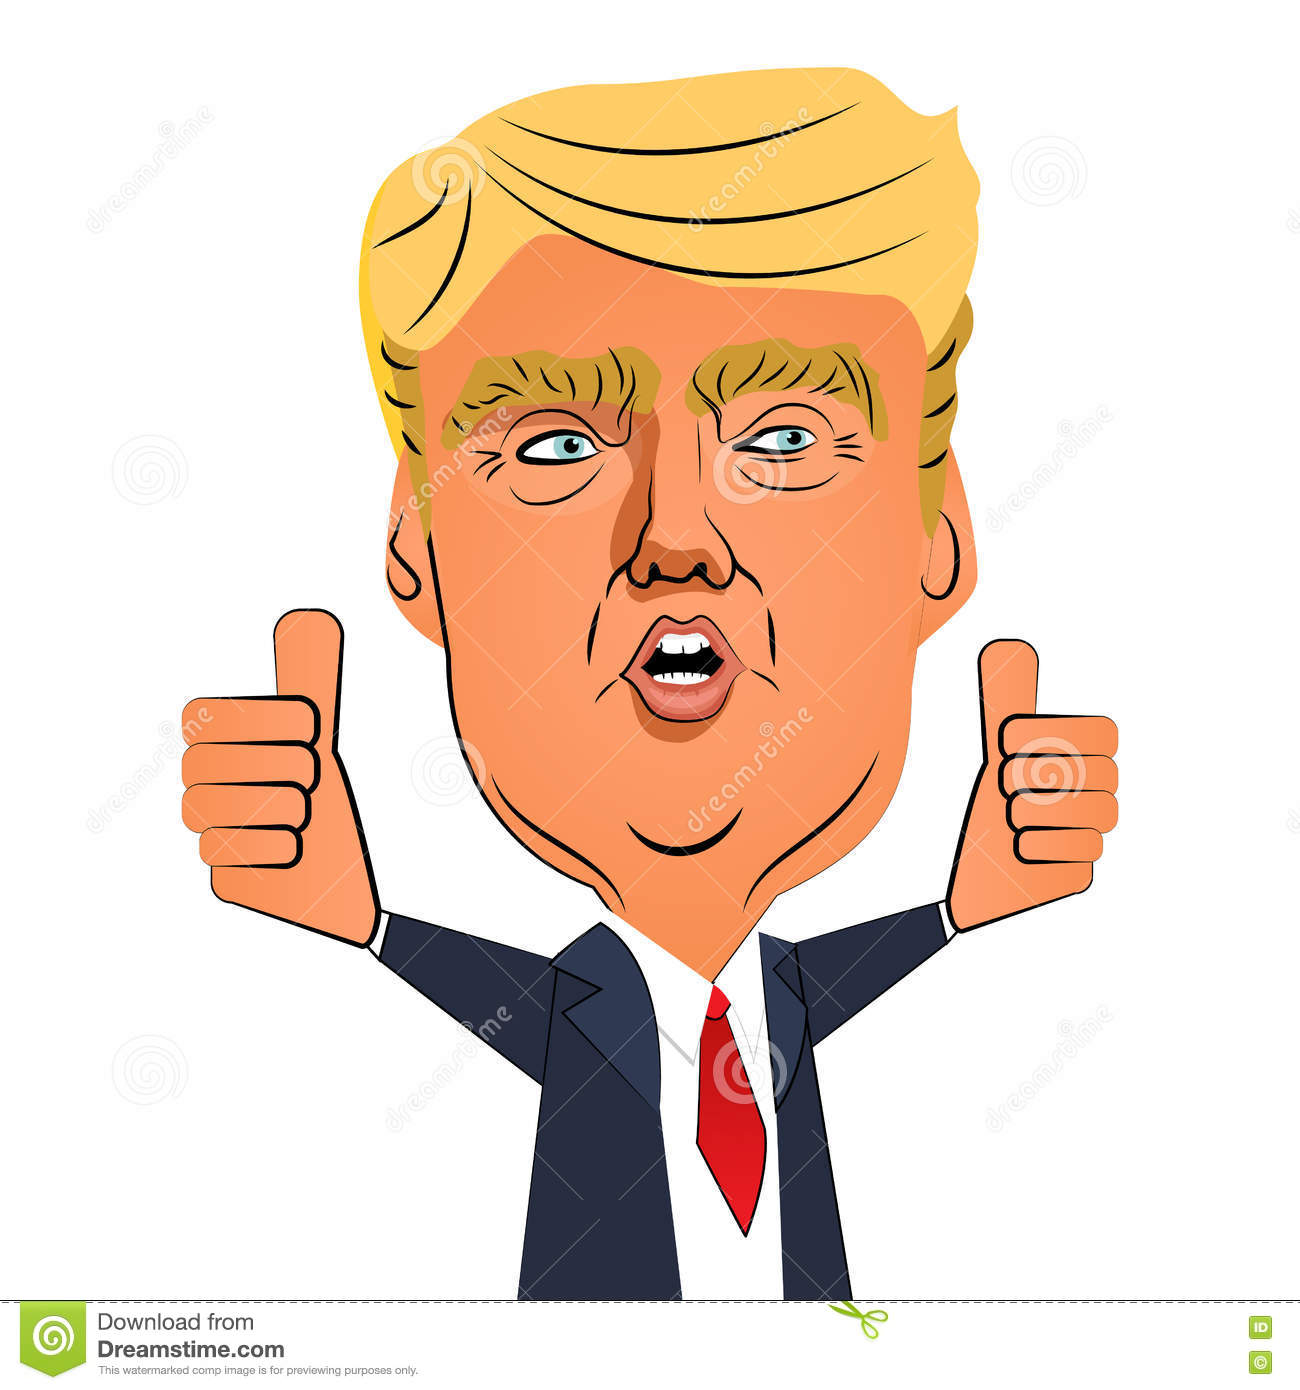 Trump clipart images picture freeuse Donald trump clipart 4 » Clipart Station picture freeuse